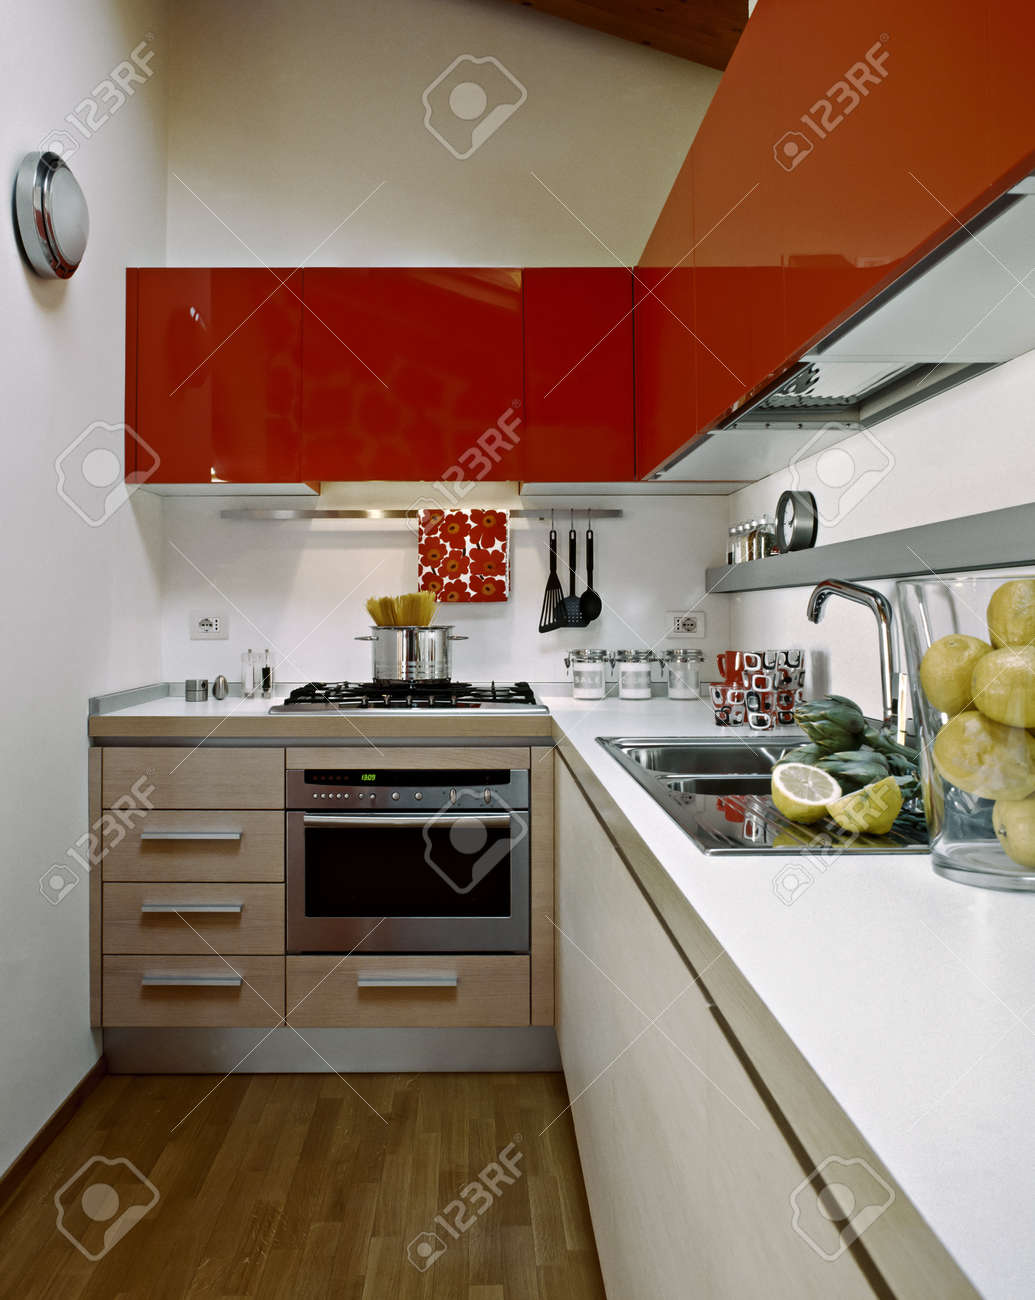 Attic Kitchen Modern Kitchen With Red Cabinets In A Attic Room With Wood Floor